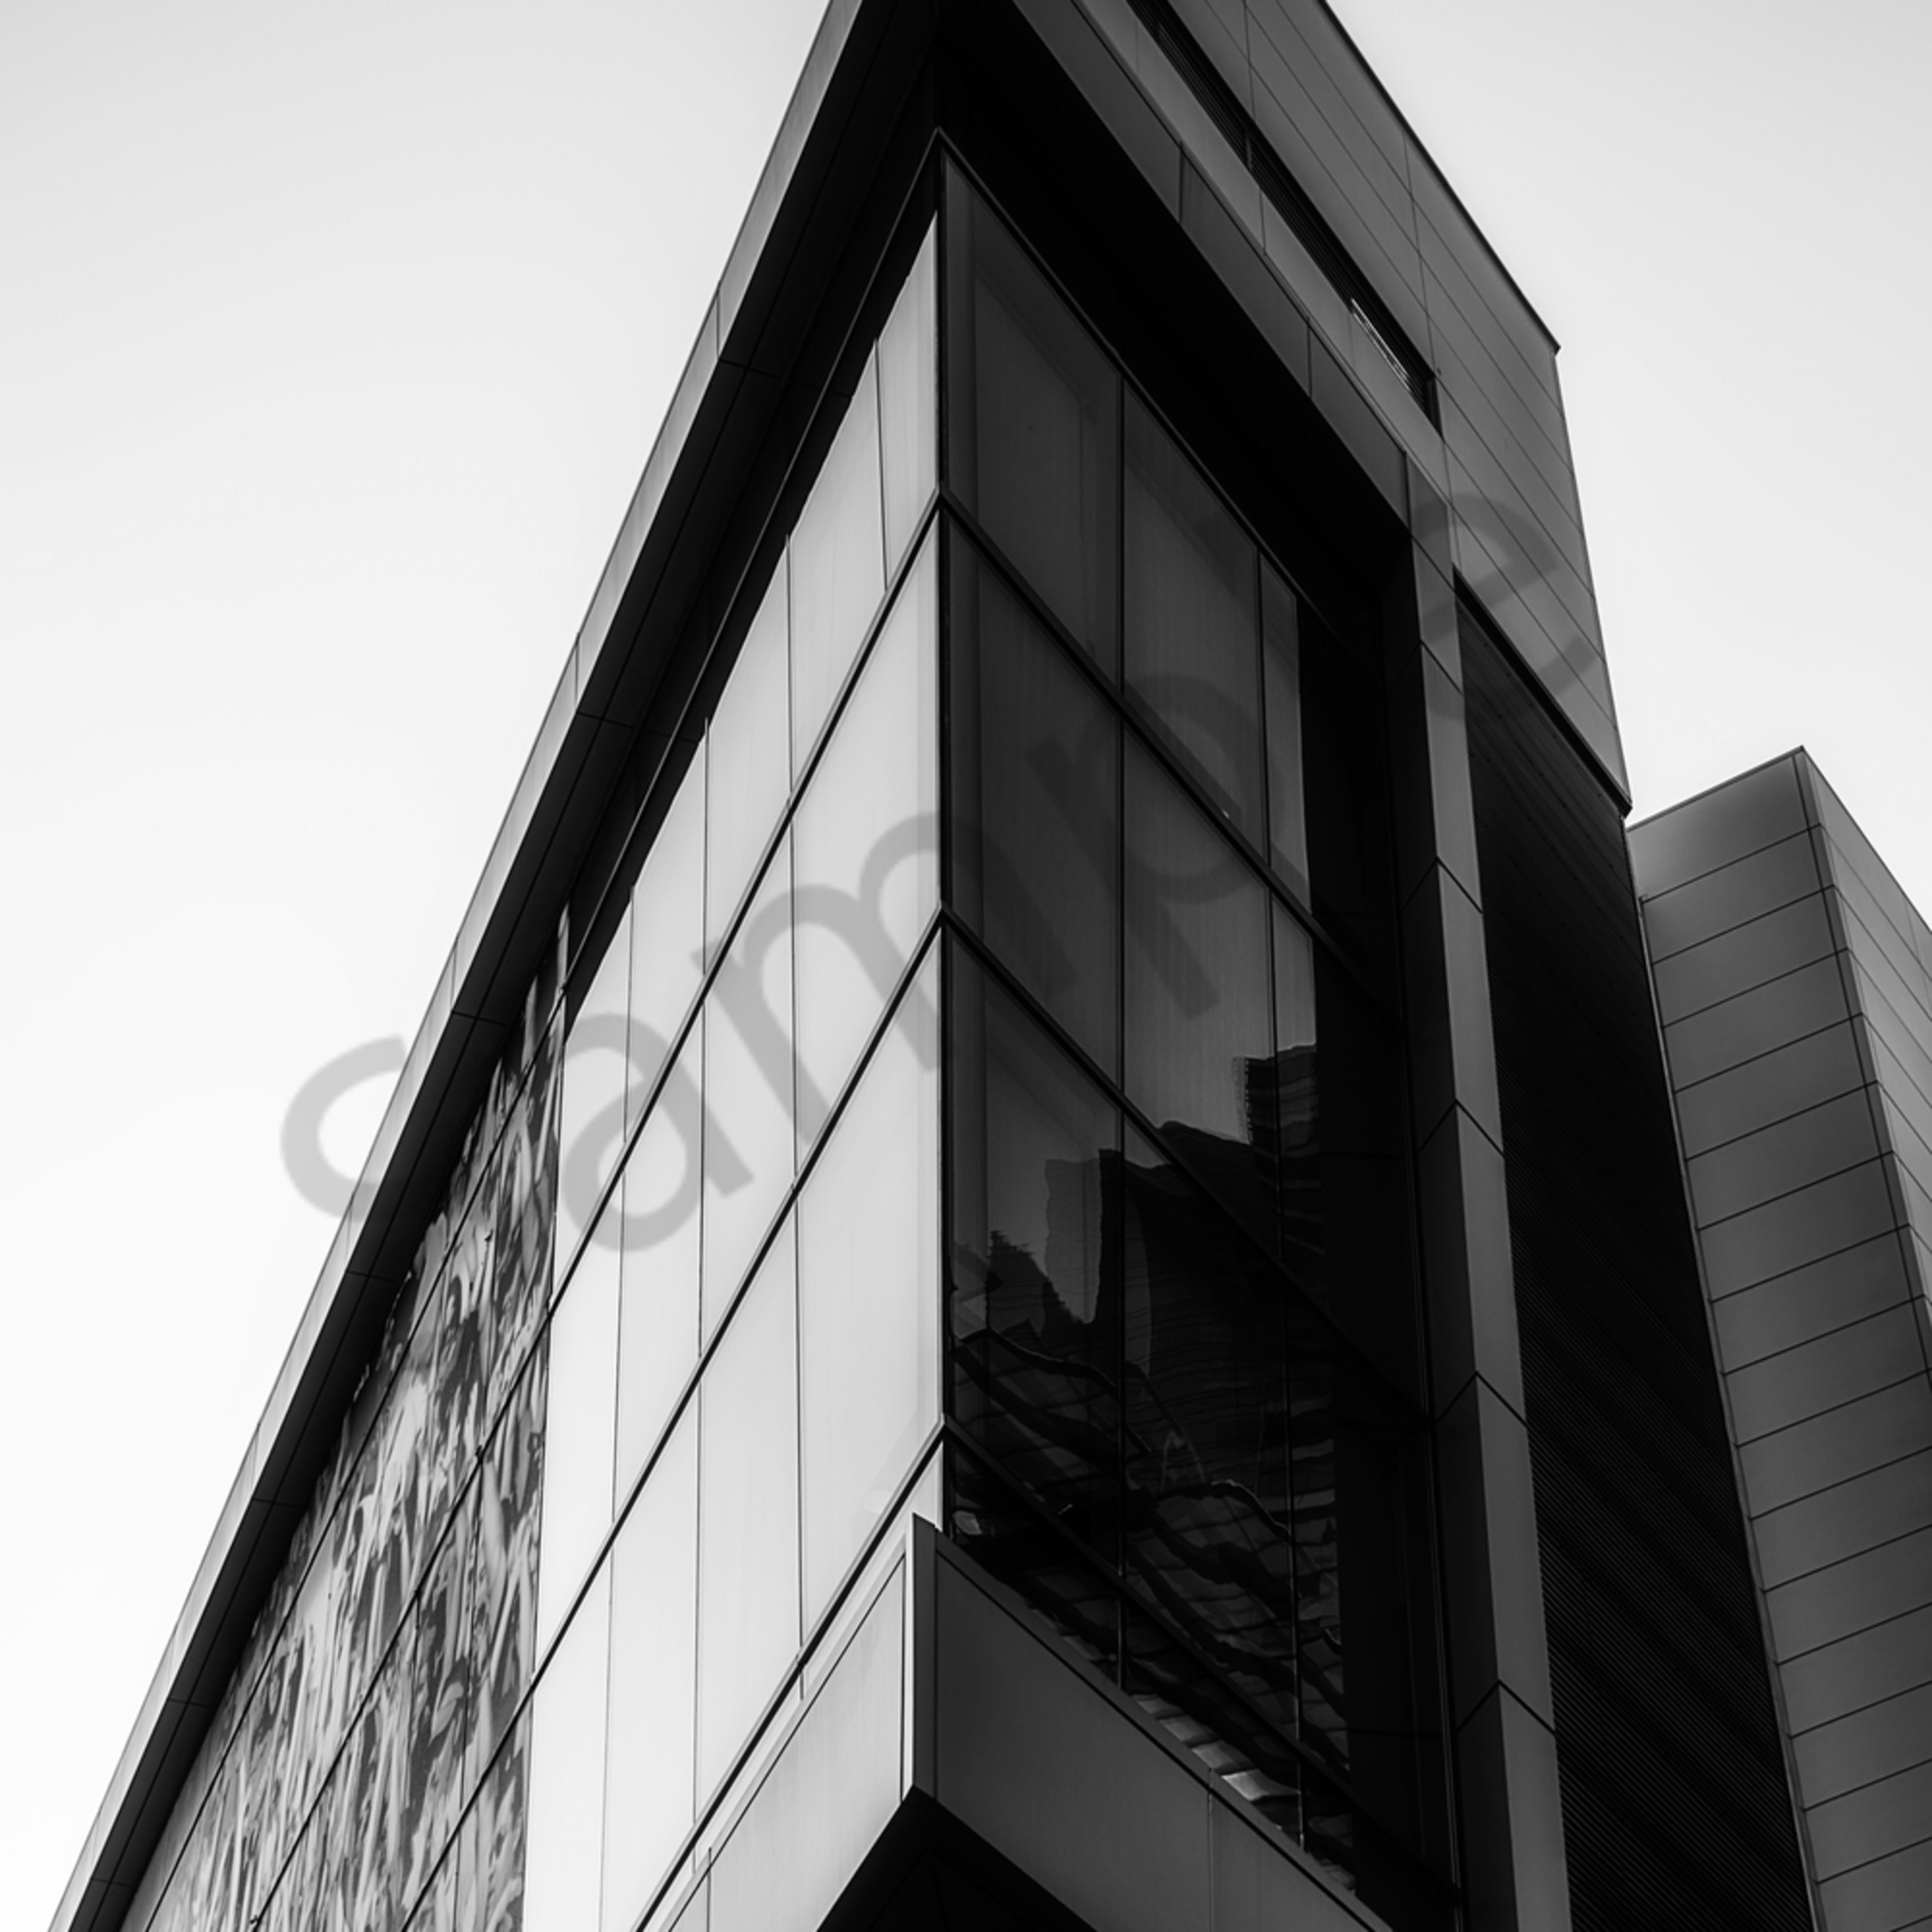 Geometric 02 angular building bw dsc 0594 vp5mtc